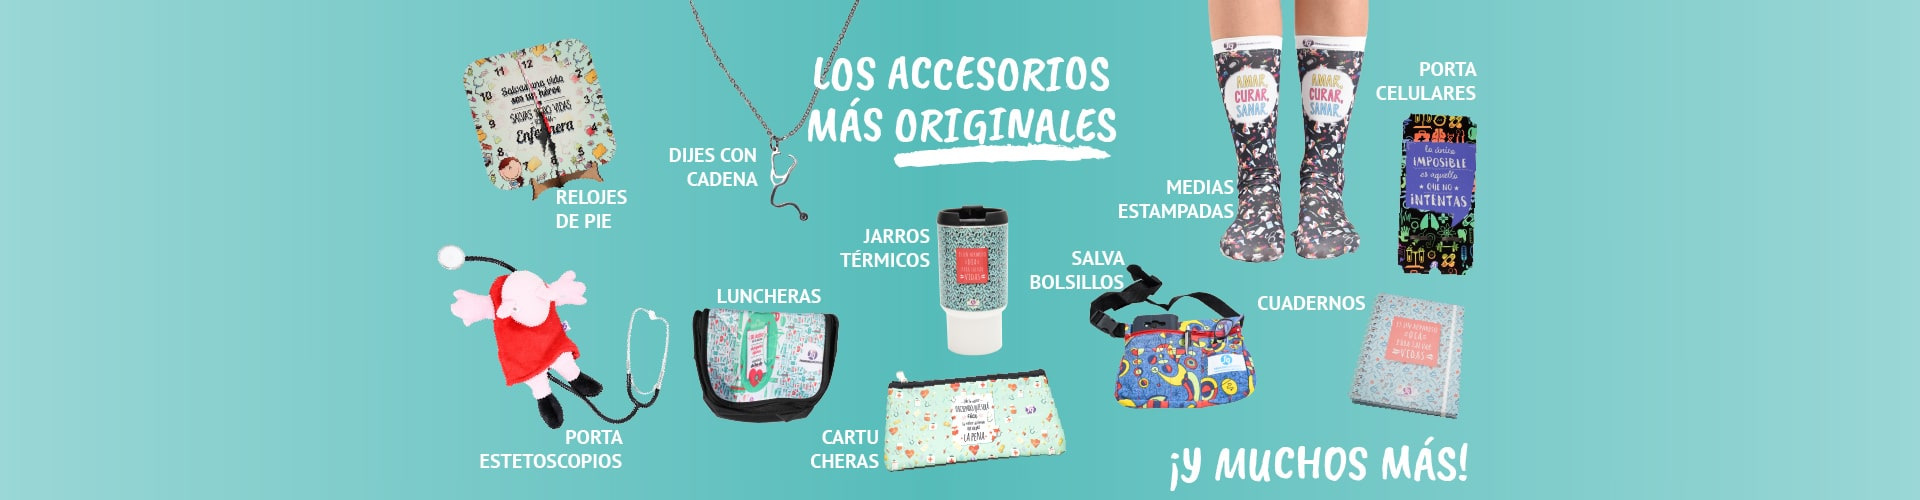 banners fq_ACCESORIOS